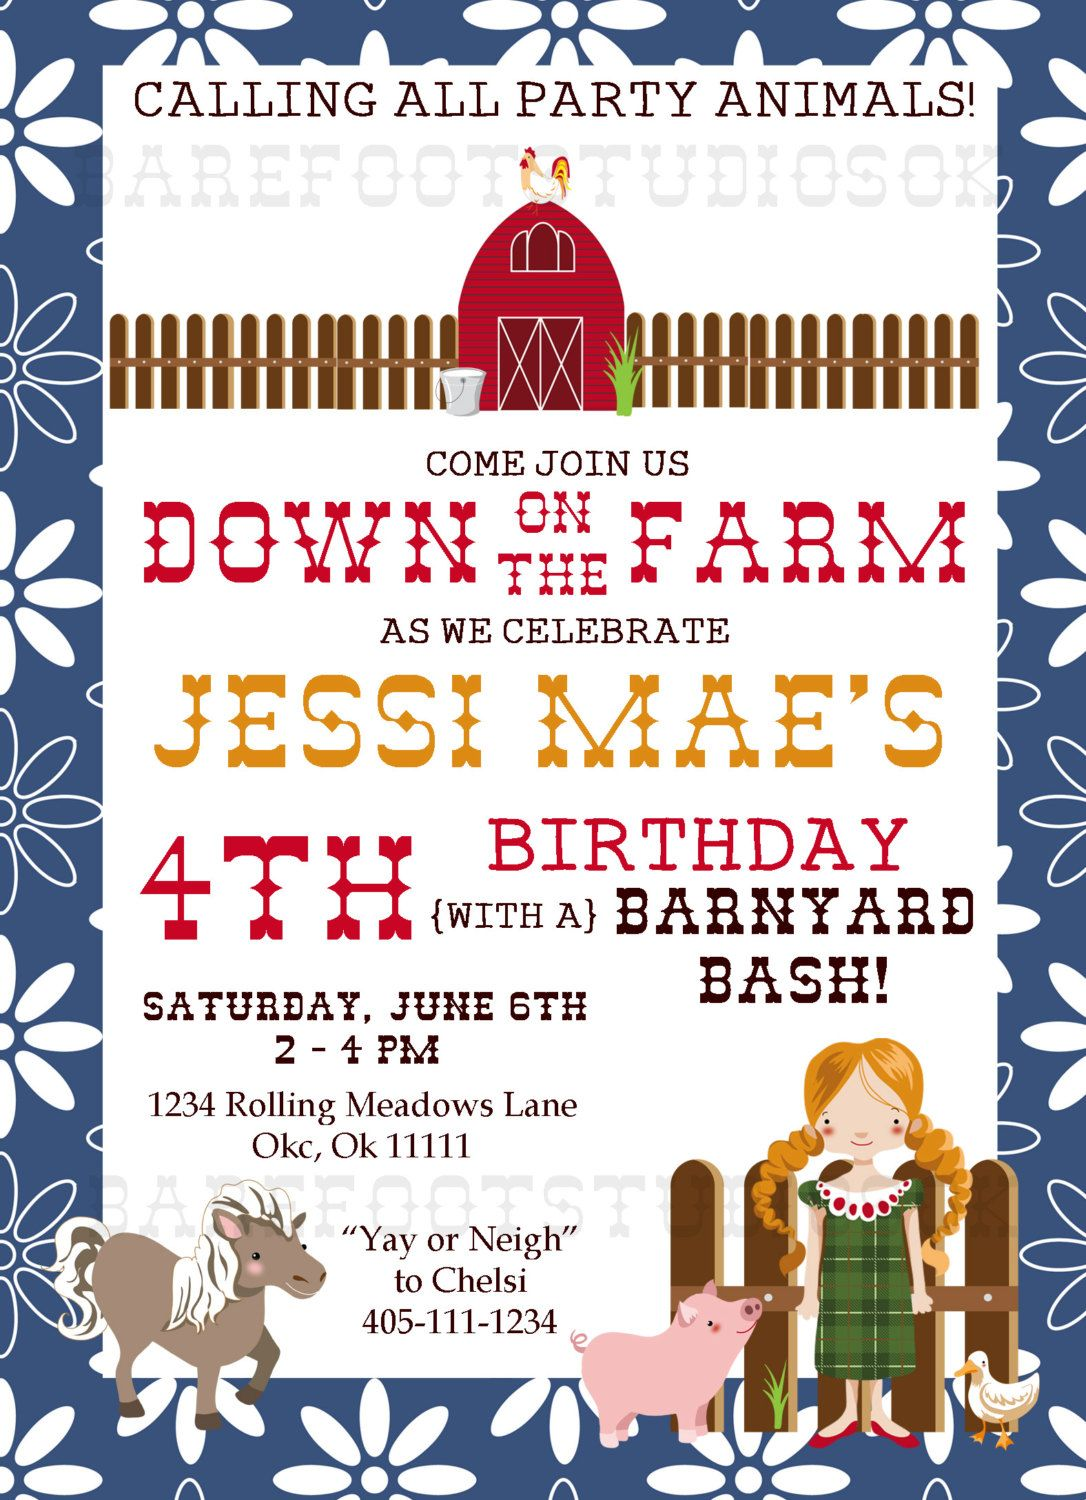 Down on the Farm Barnyard Bash Floral 5x7 Digital Birthday ...